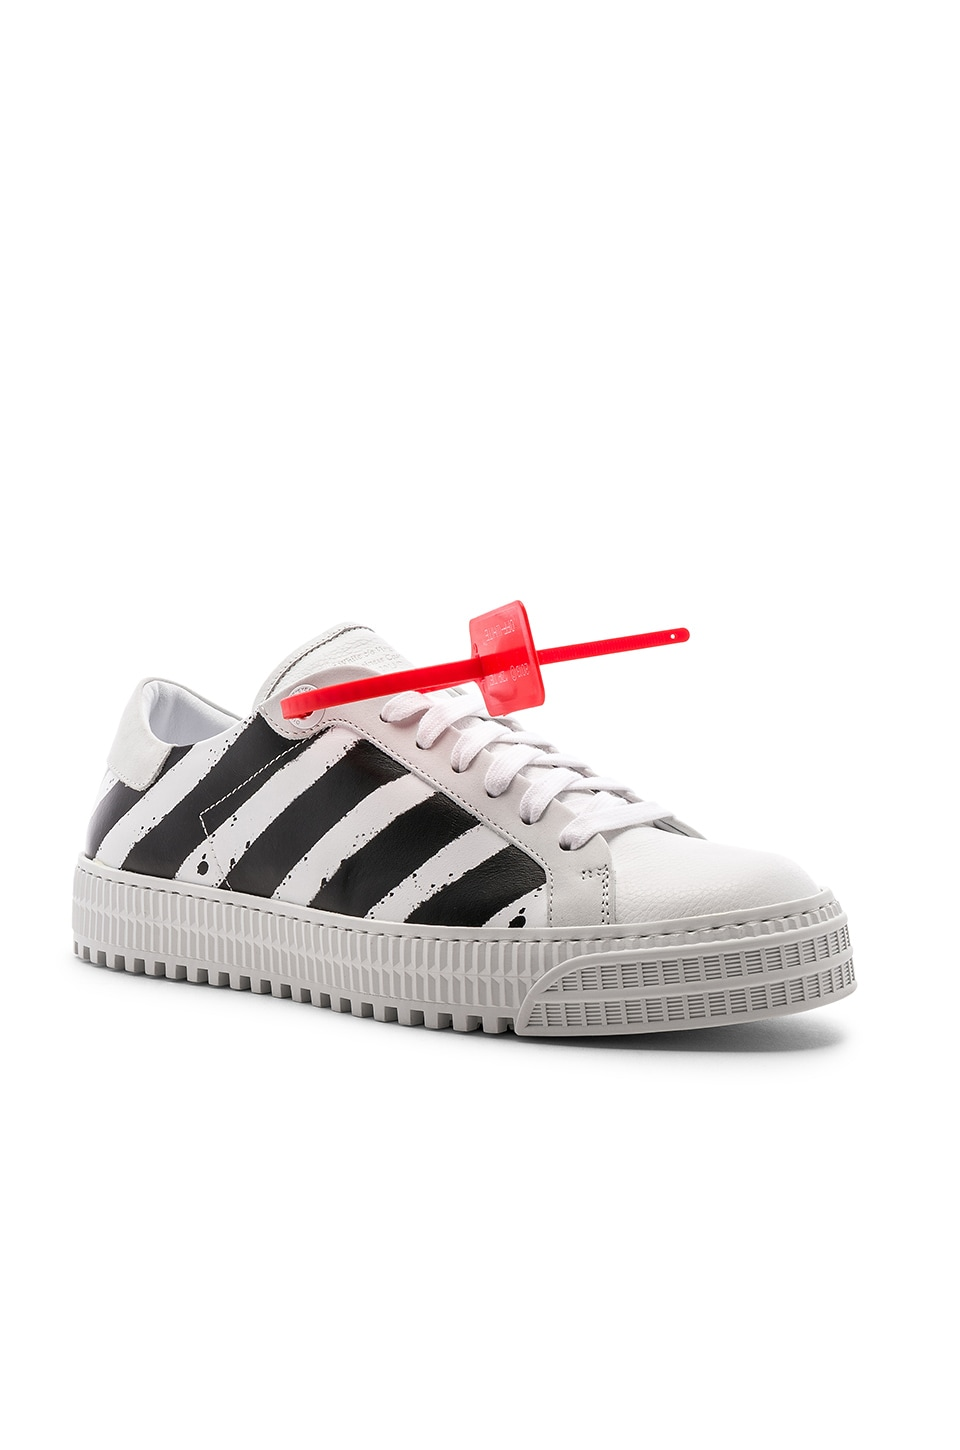 OFF-WHITE CHAUSSURES DIAGONAL